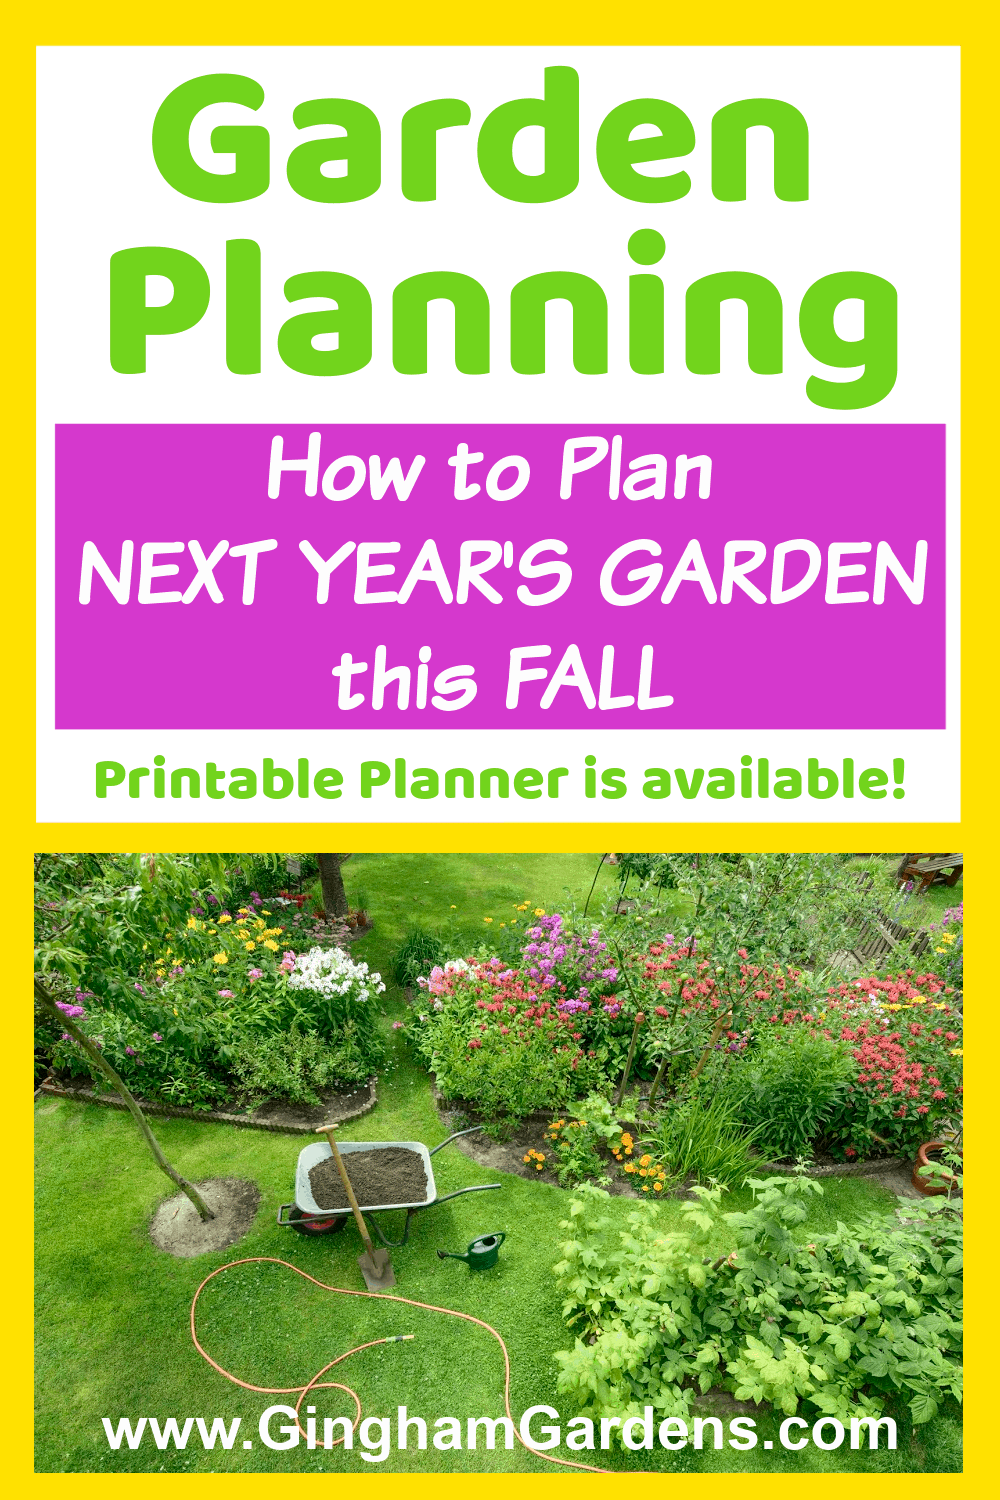 Image of a garden with text overlay - Garden Planning